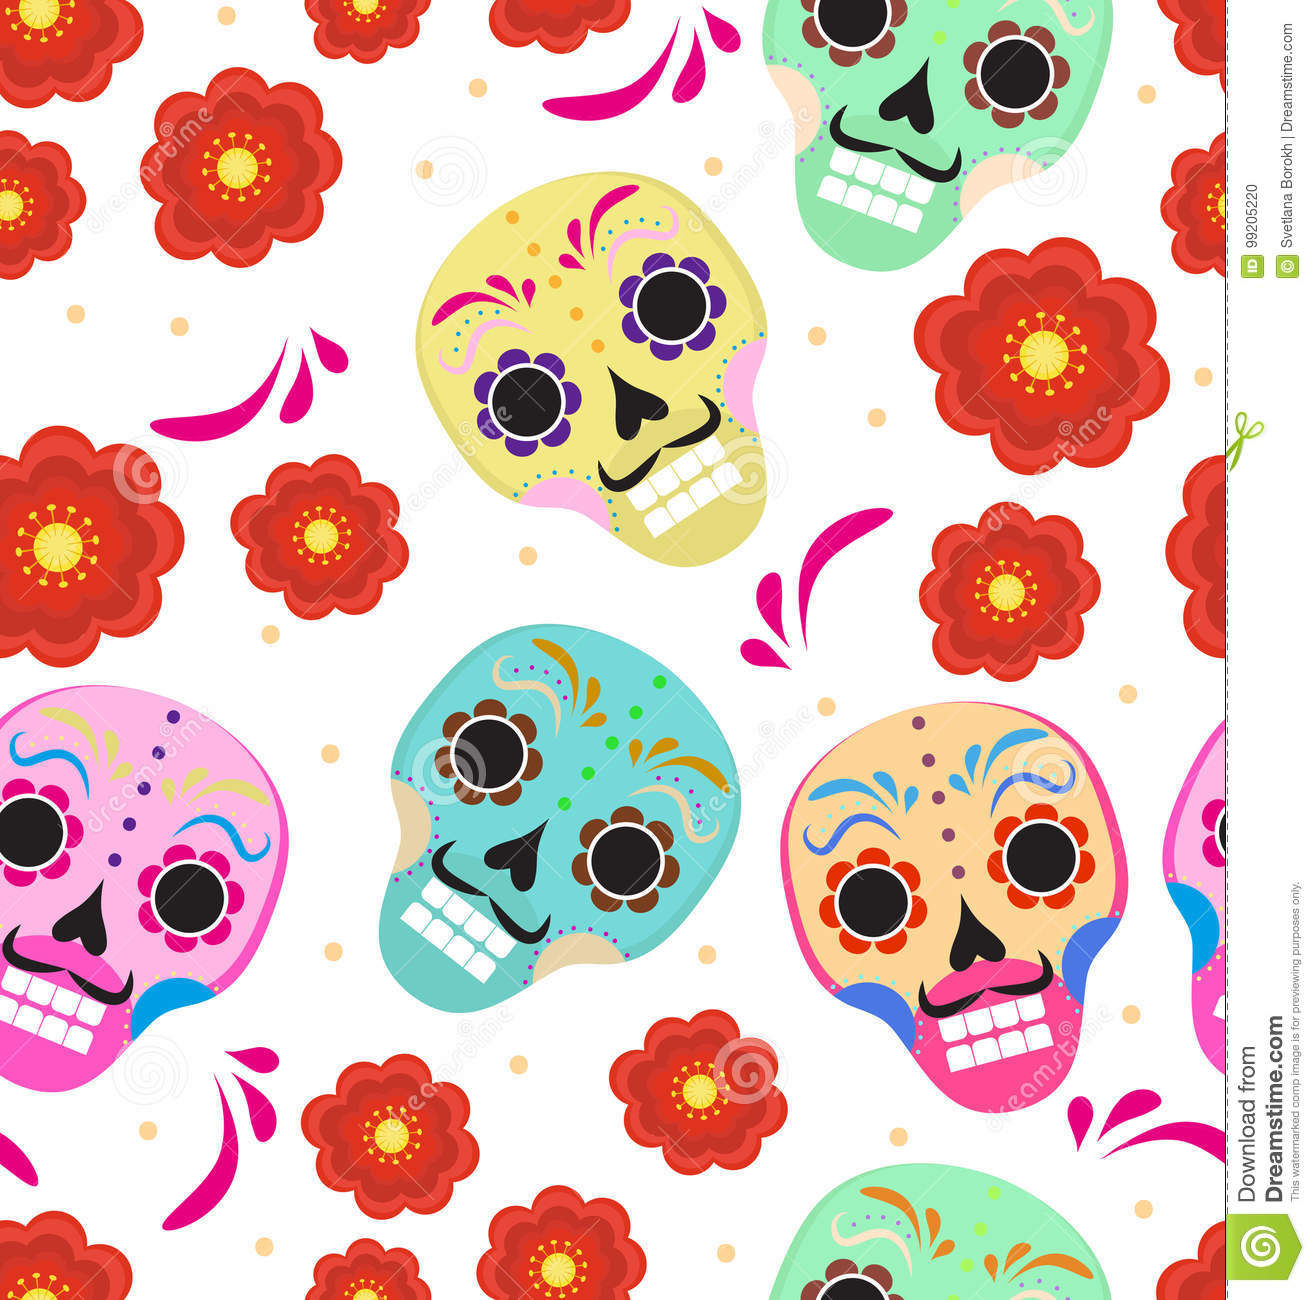 Download Day Of The Dead Holiday In Mexico Seamless Pattern With Sugar Skulls. Skeleton Endless Background. Dia De Muertos Stock Vector - Illustration of dead, mexico: 99205220